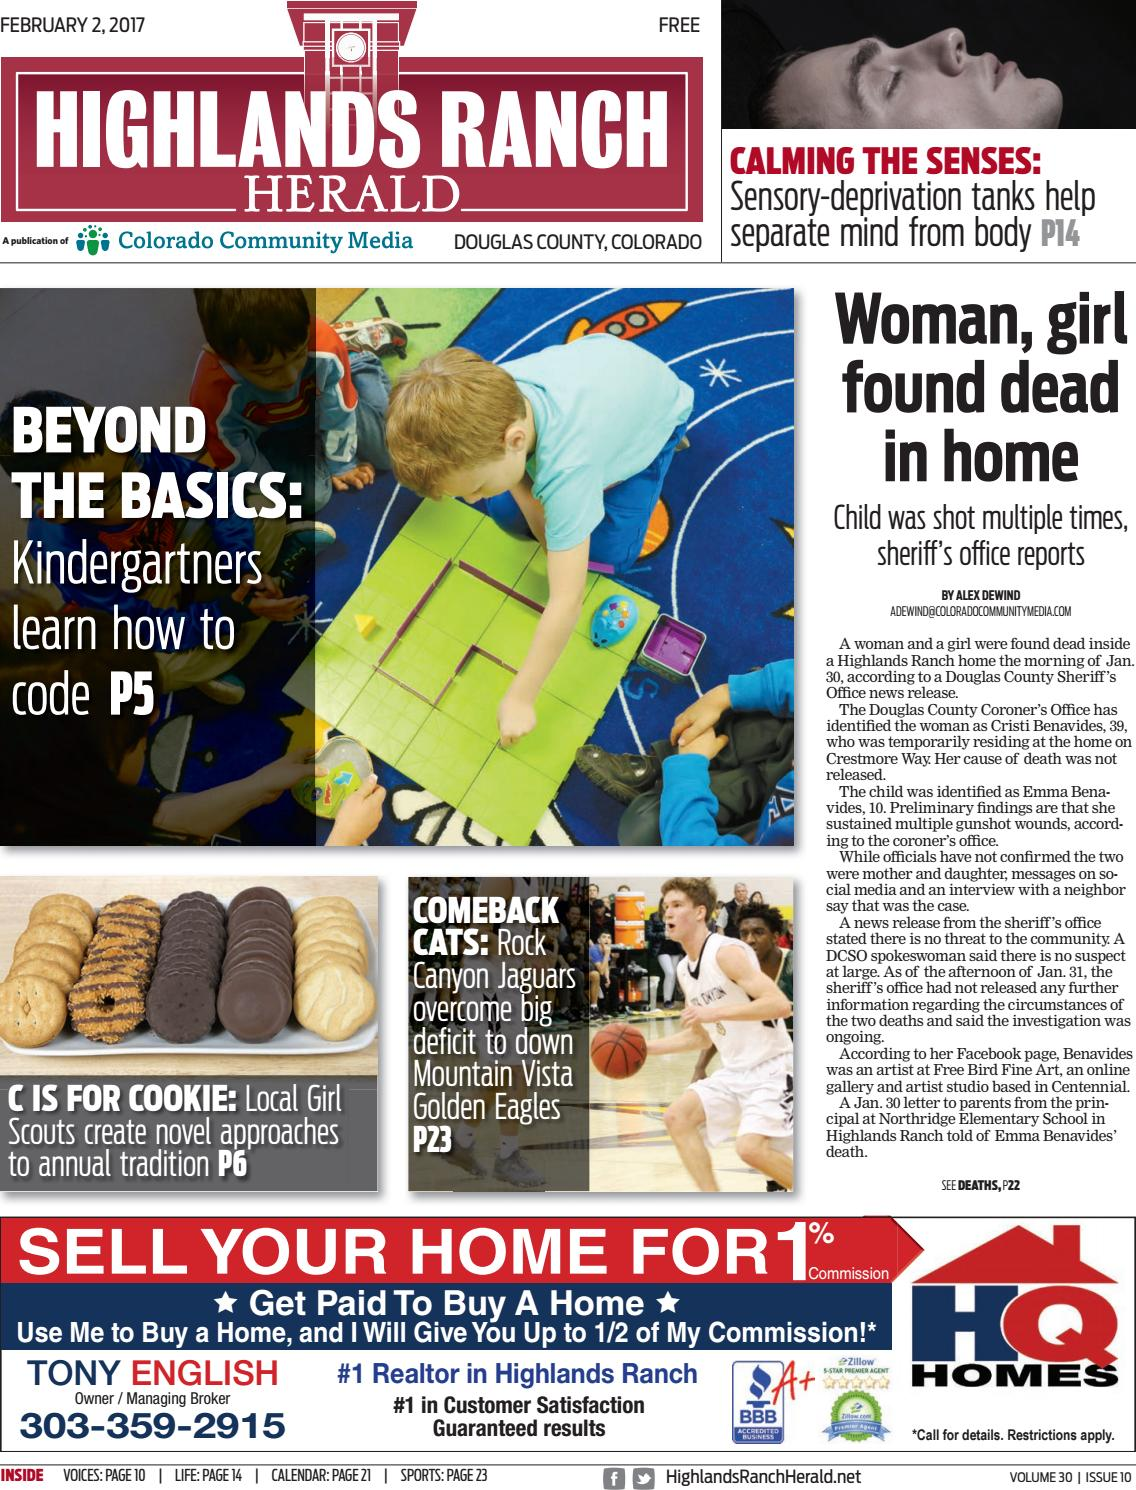 Highlands Ranch Herald 0202 by Colorado Community Media - issuu